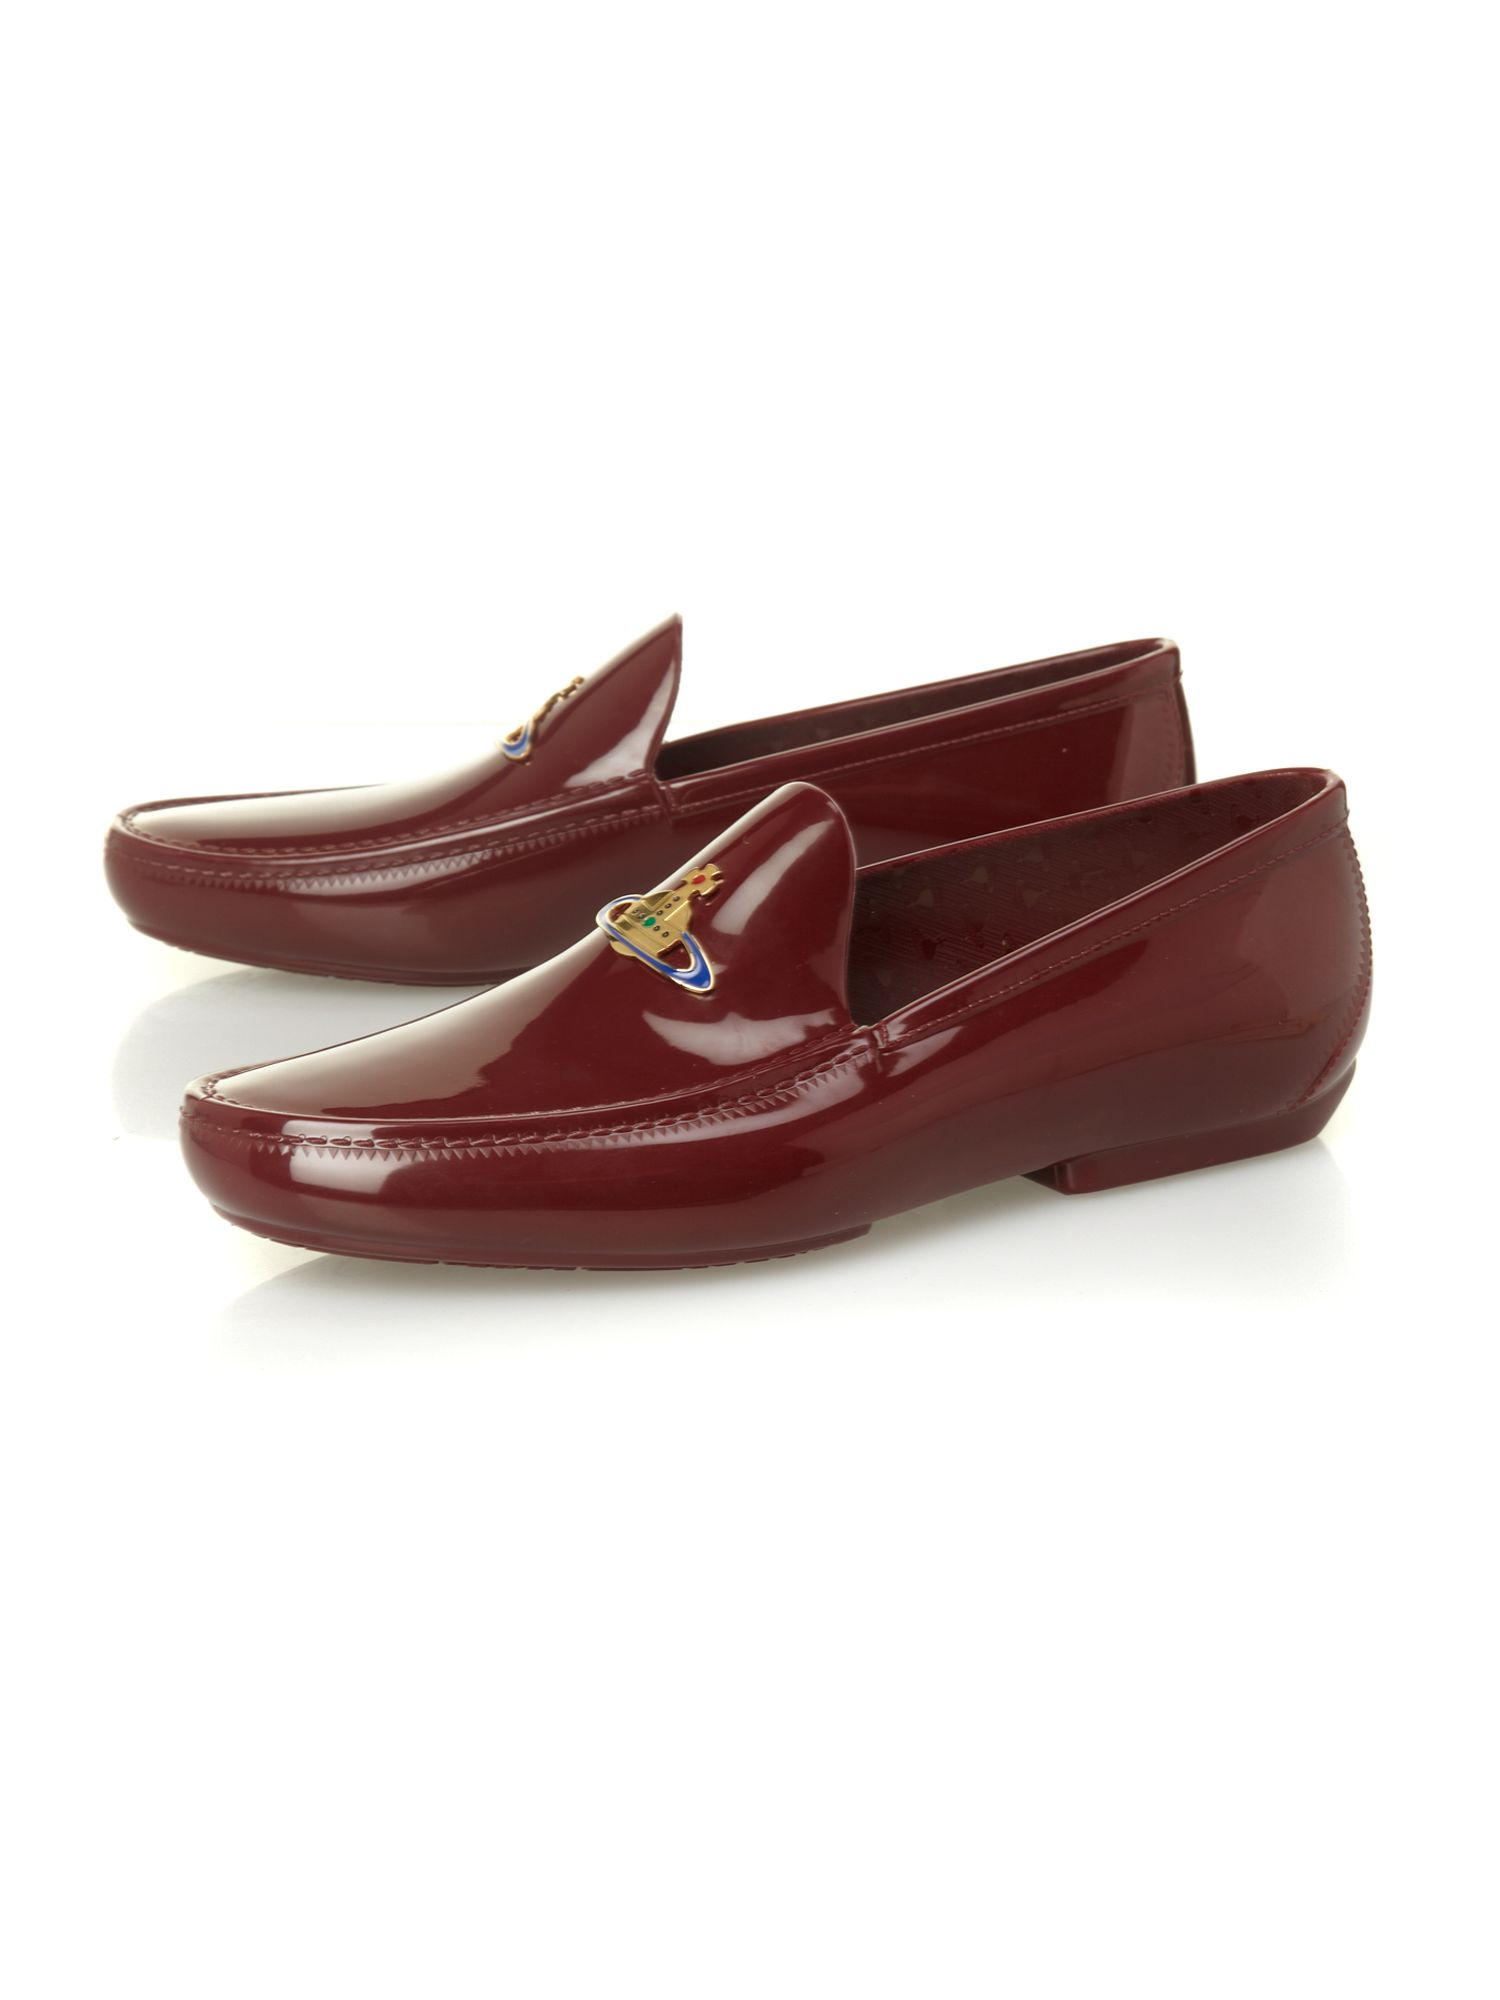 Loafer with orb logo